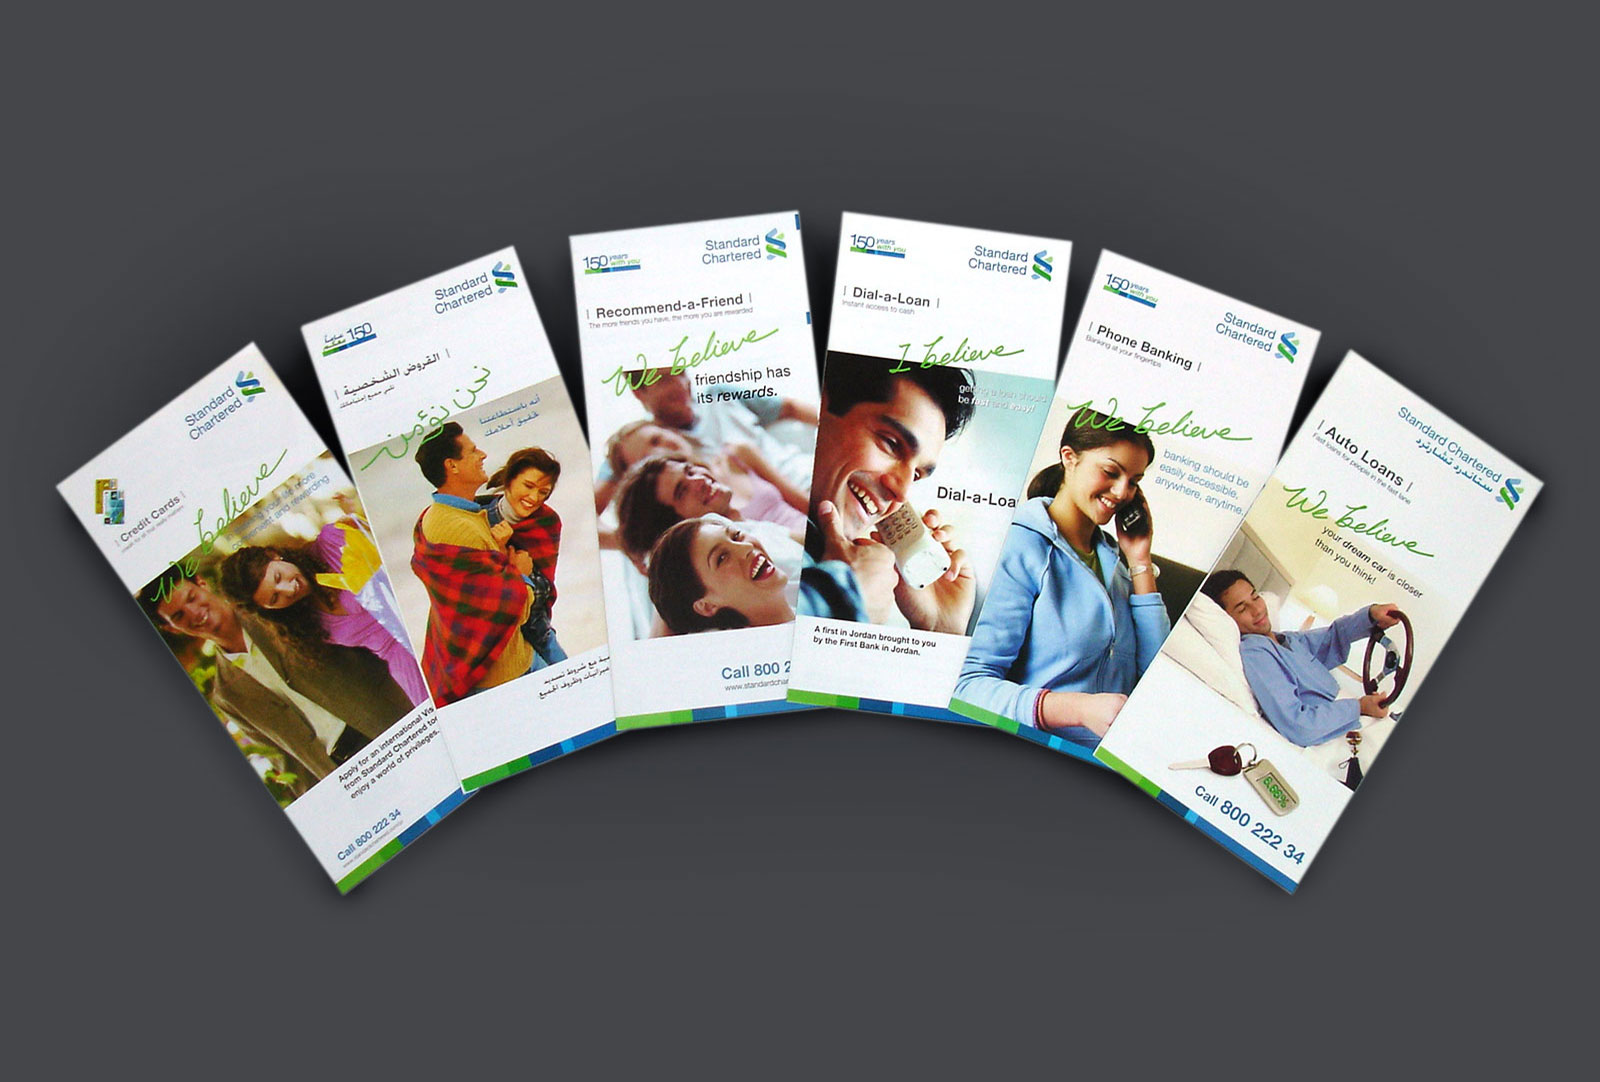 Standard Chartered-Bank Promotional Campaigns Flyers designed by Creations